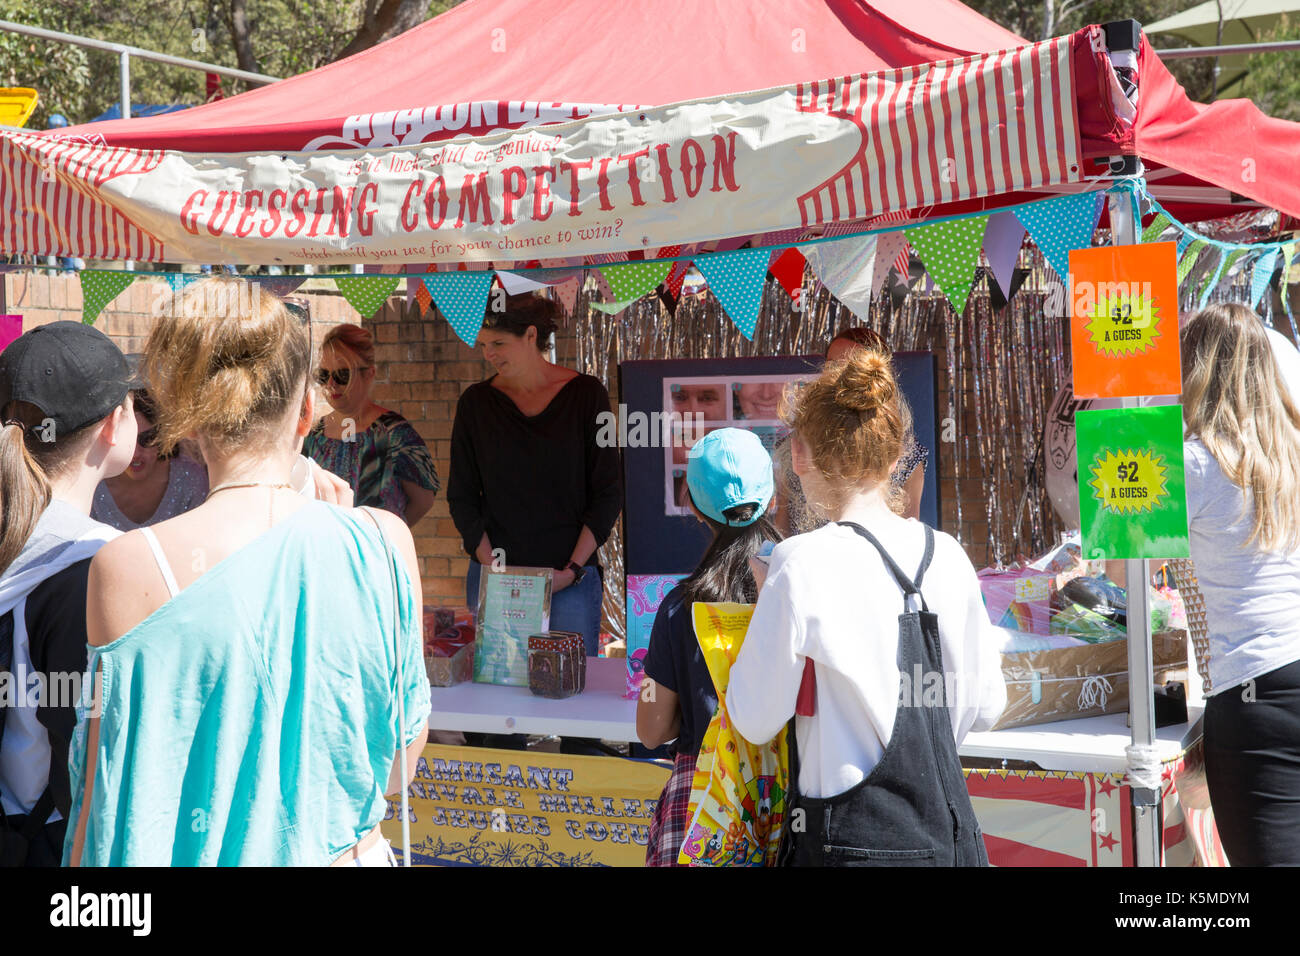 Australian school fete for the community includes games,stalls and events,Sydney,Australia - Stock Image